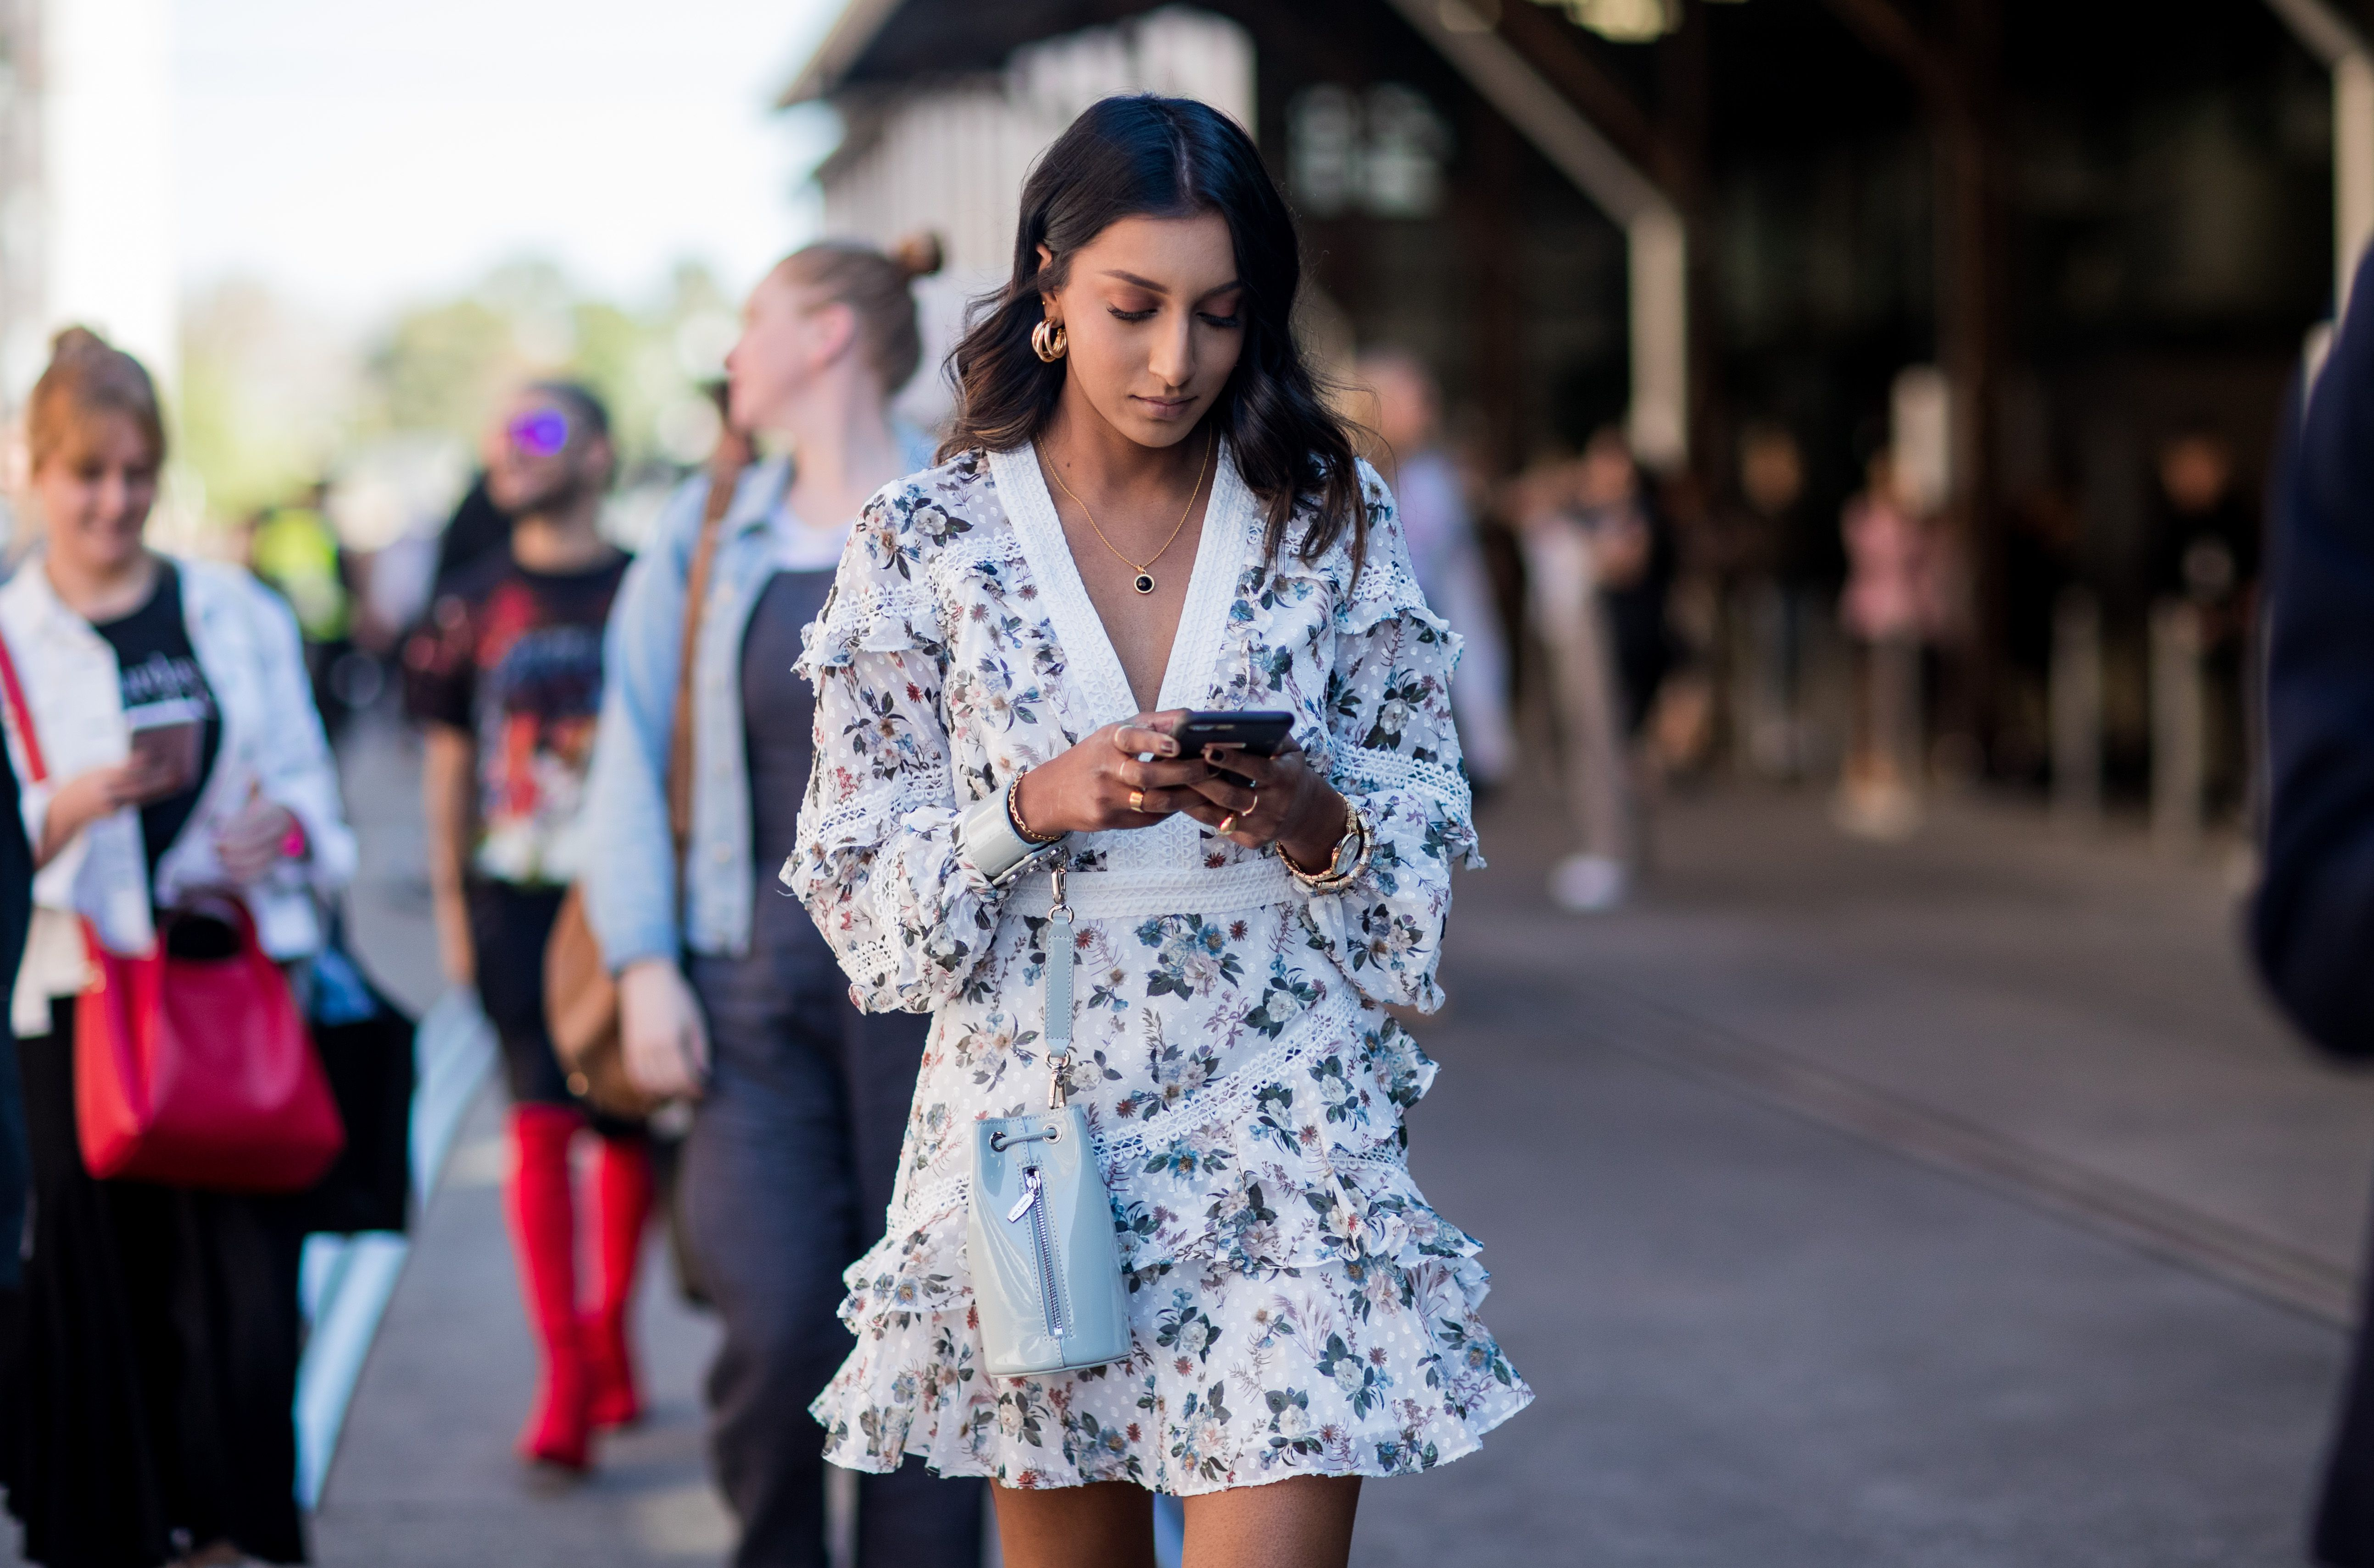 7 Perfect Summer Outfits for Women Inspired by Street Style